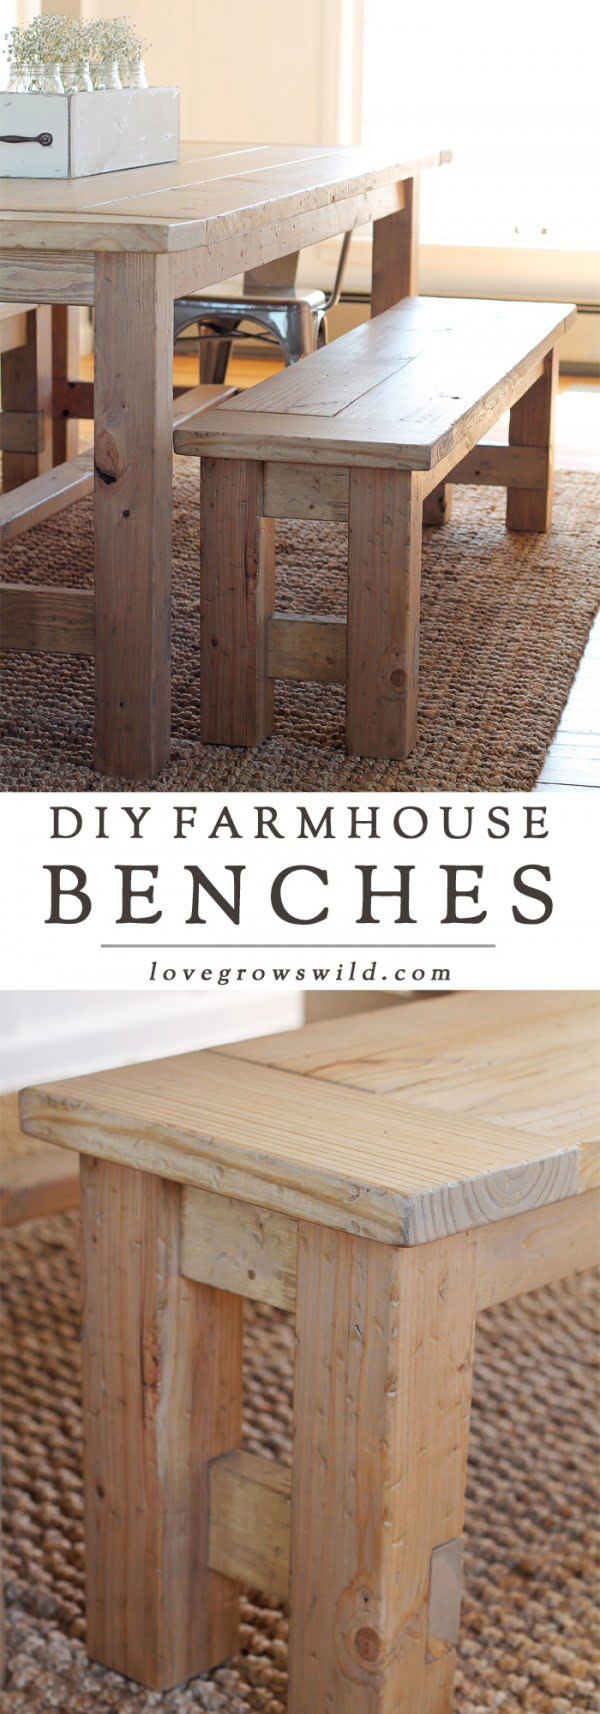 Check out the tutorial on how to make a DIY farmhouse bench